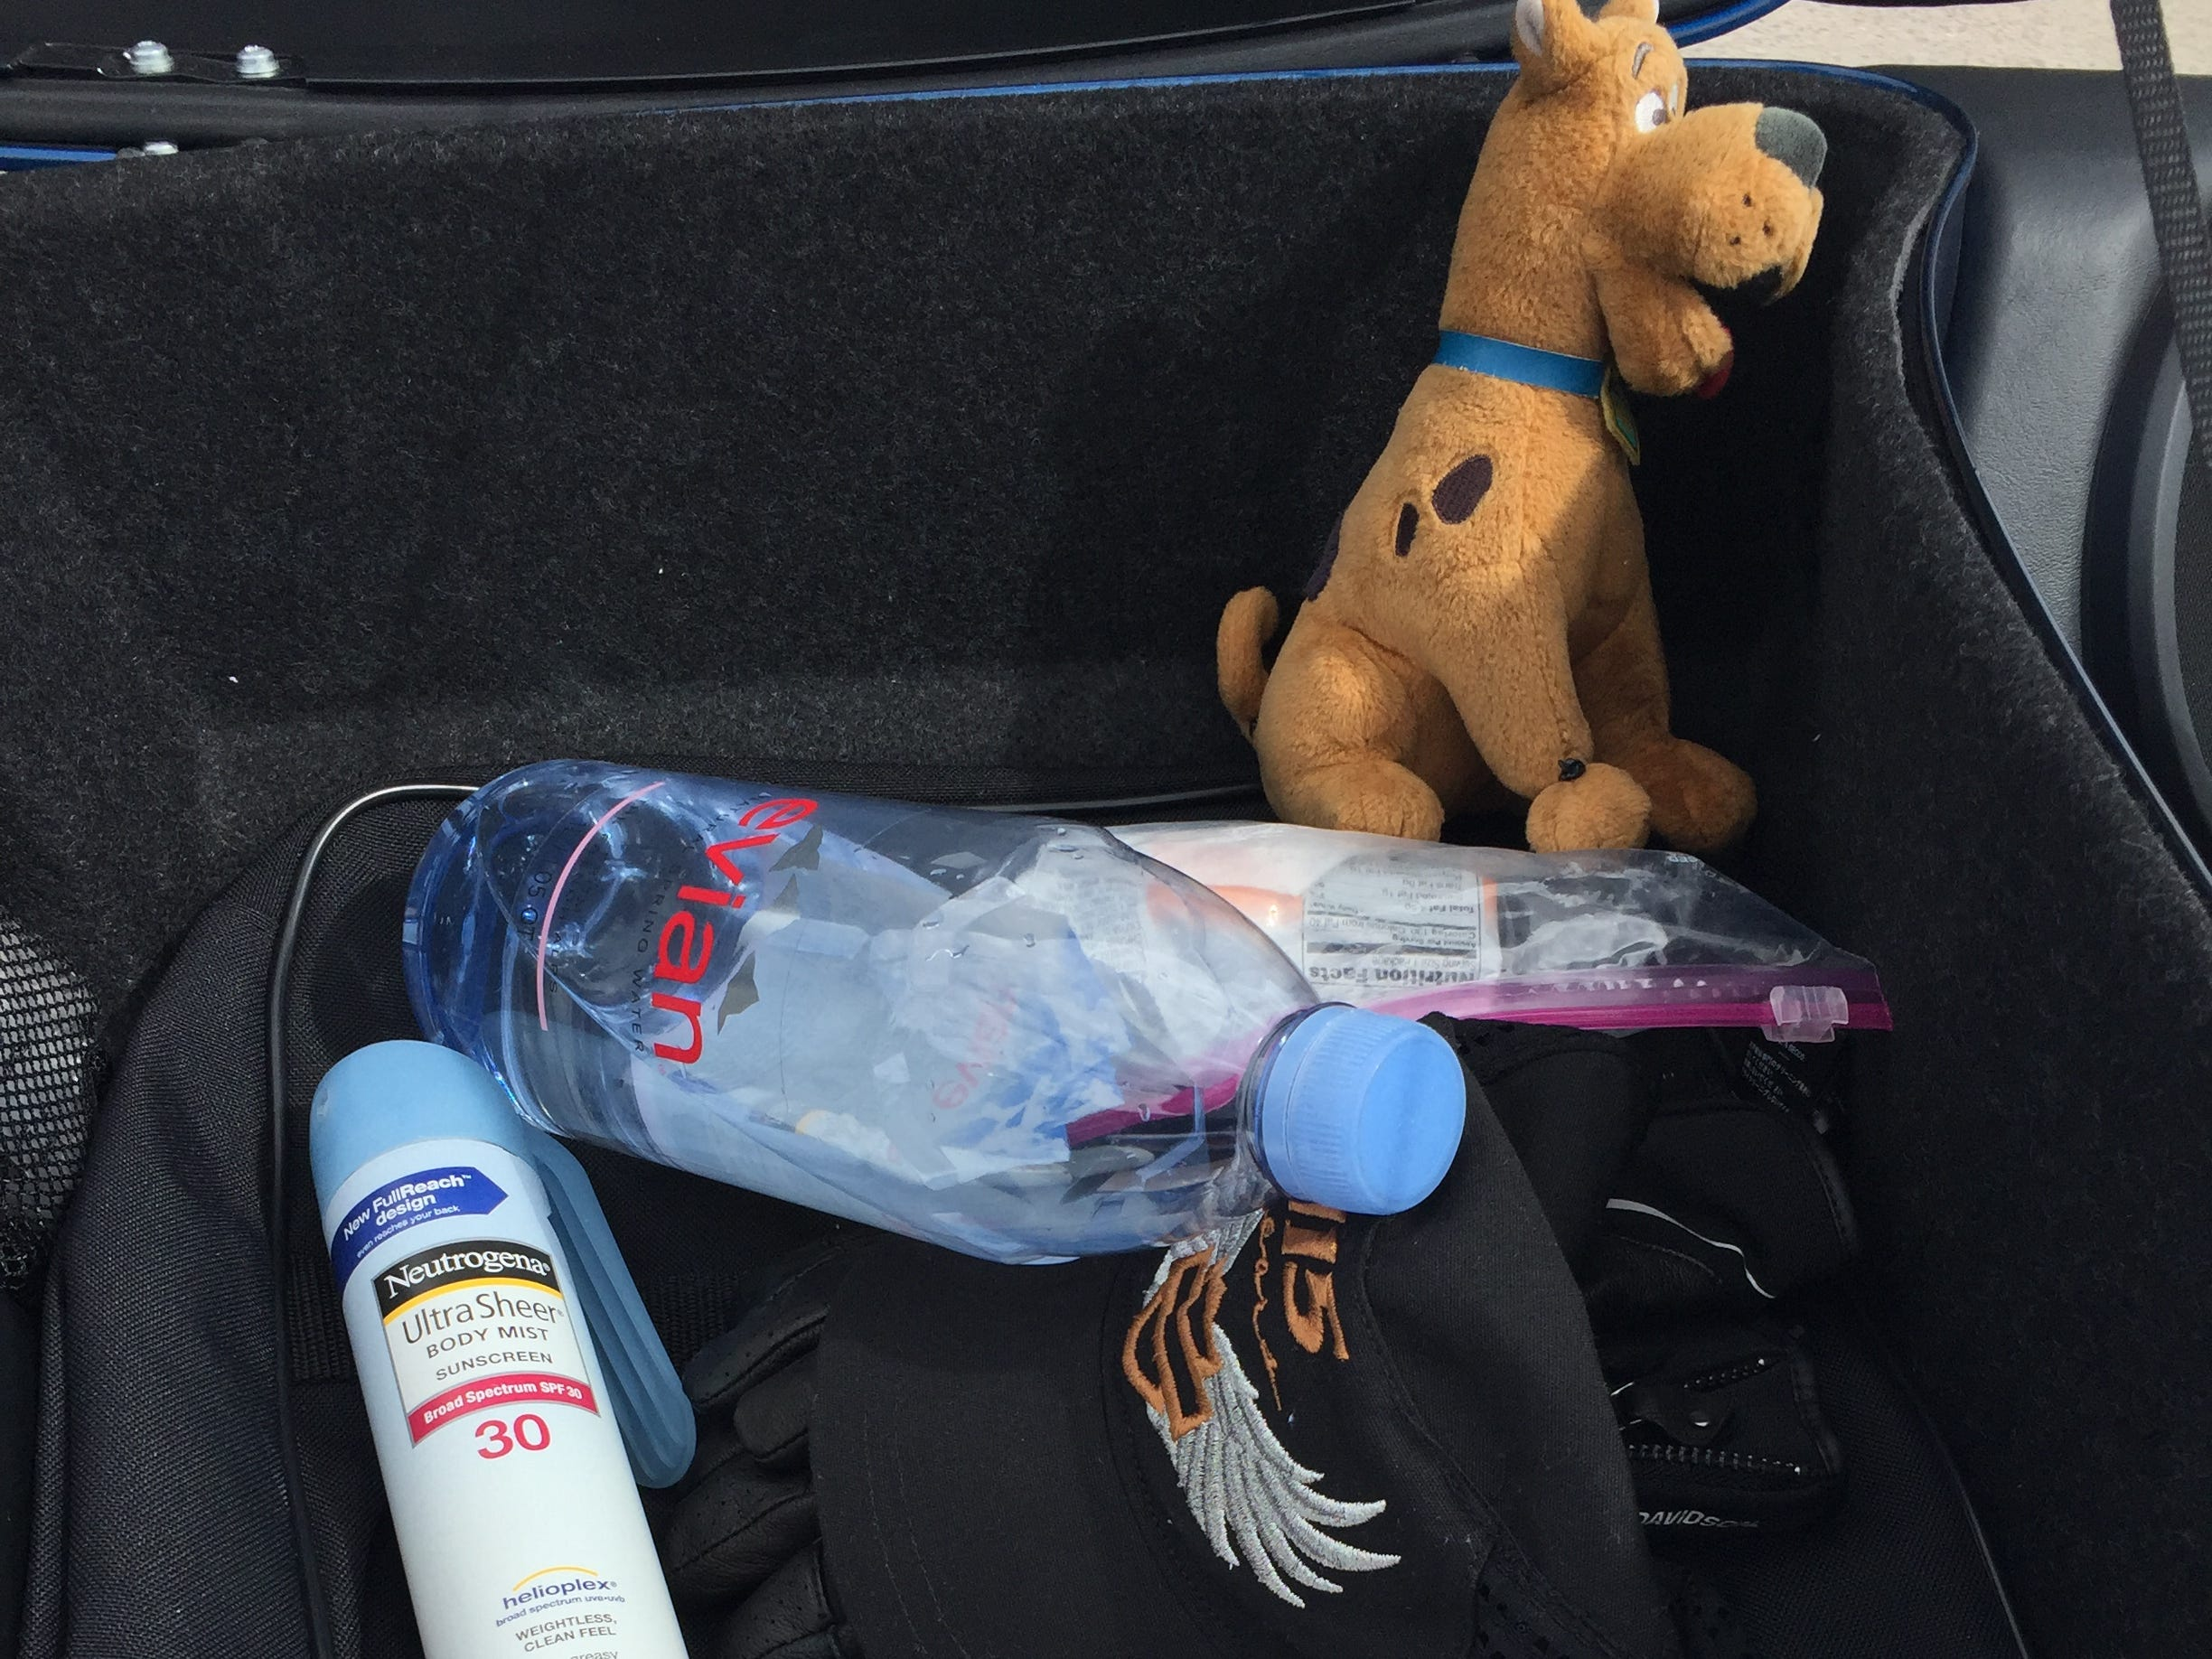 Along with water, sunscreen and a phone charger, Heather Malenshek, vice president of marketing for Harley-Davidson, keeps a Scooby-Doo stuffed animal in the touring pack of her bike. Her godson gave it to her as a good luck charm.